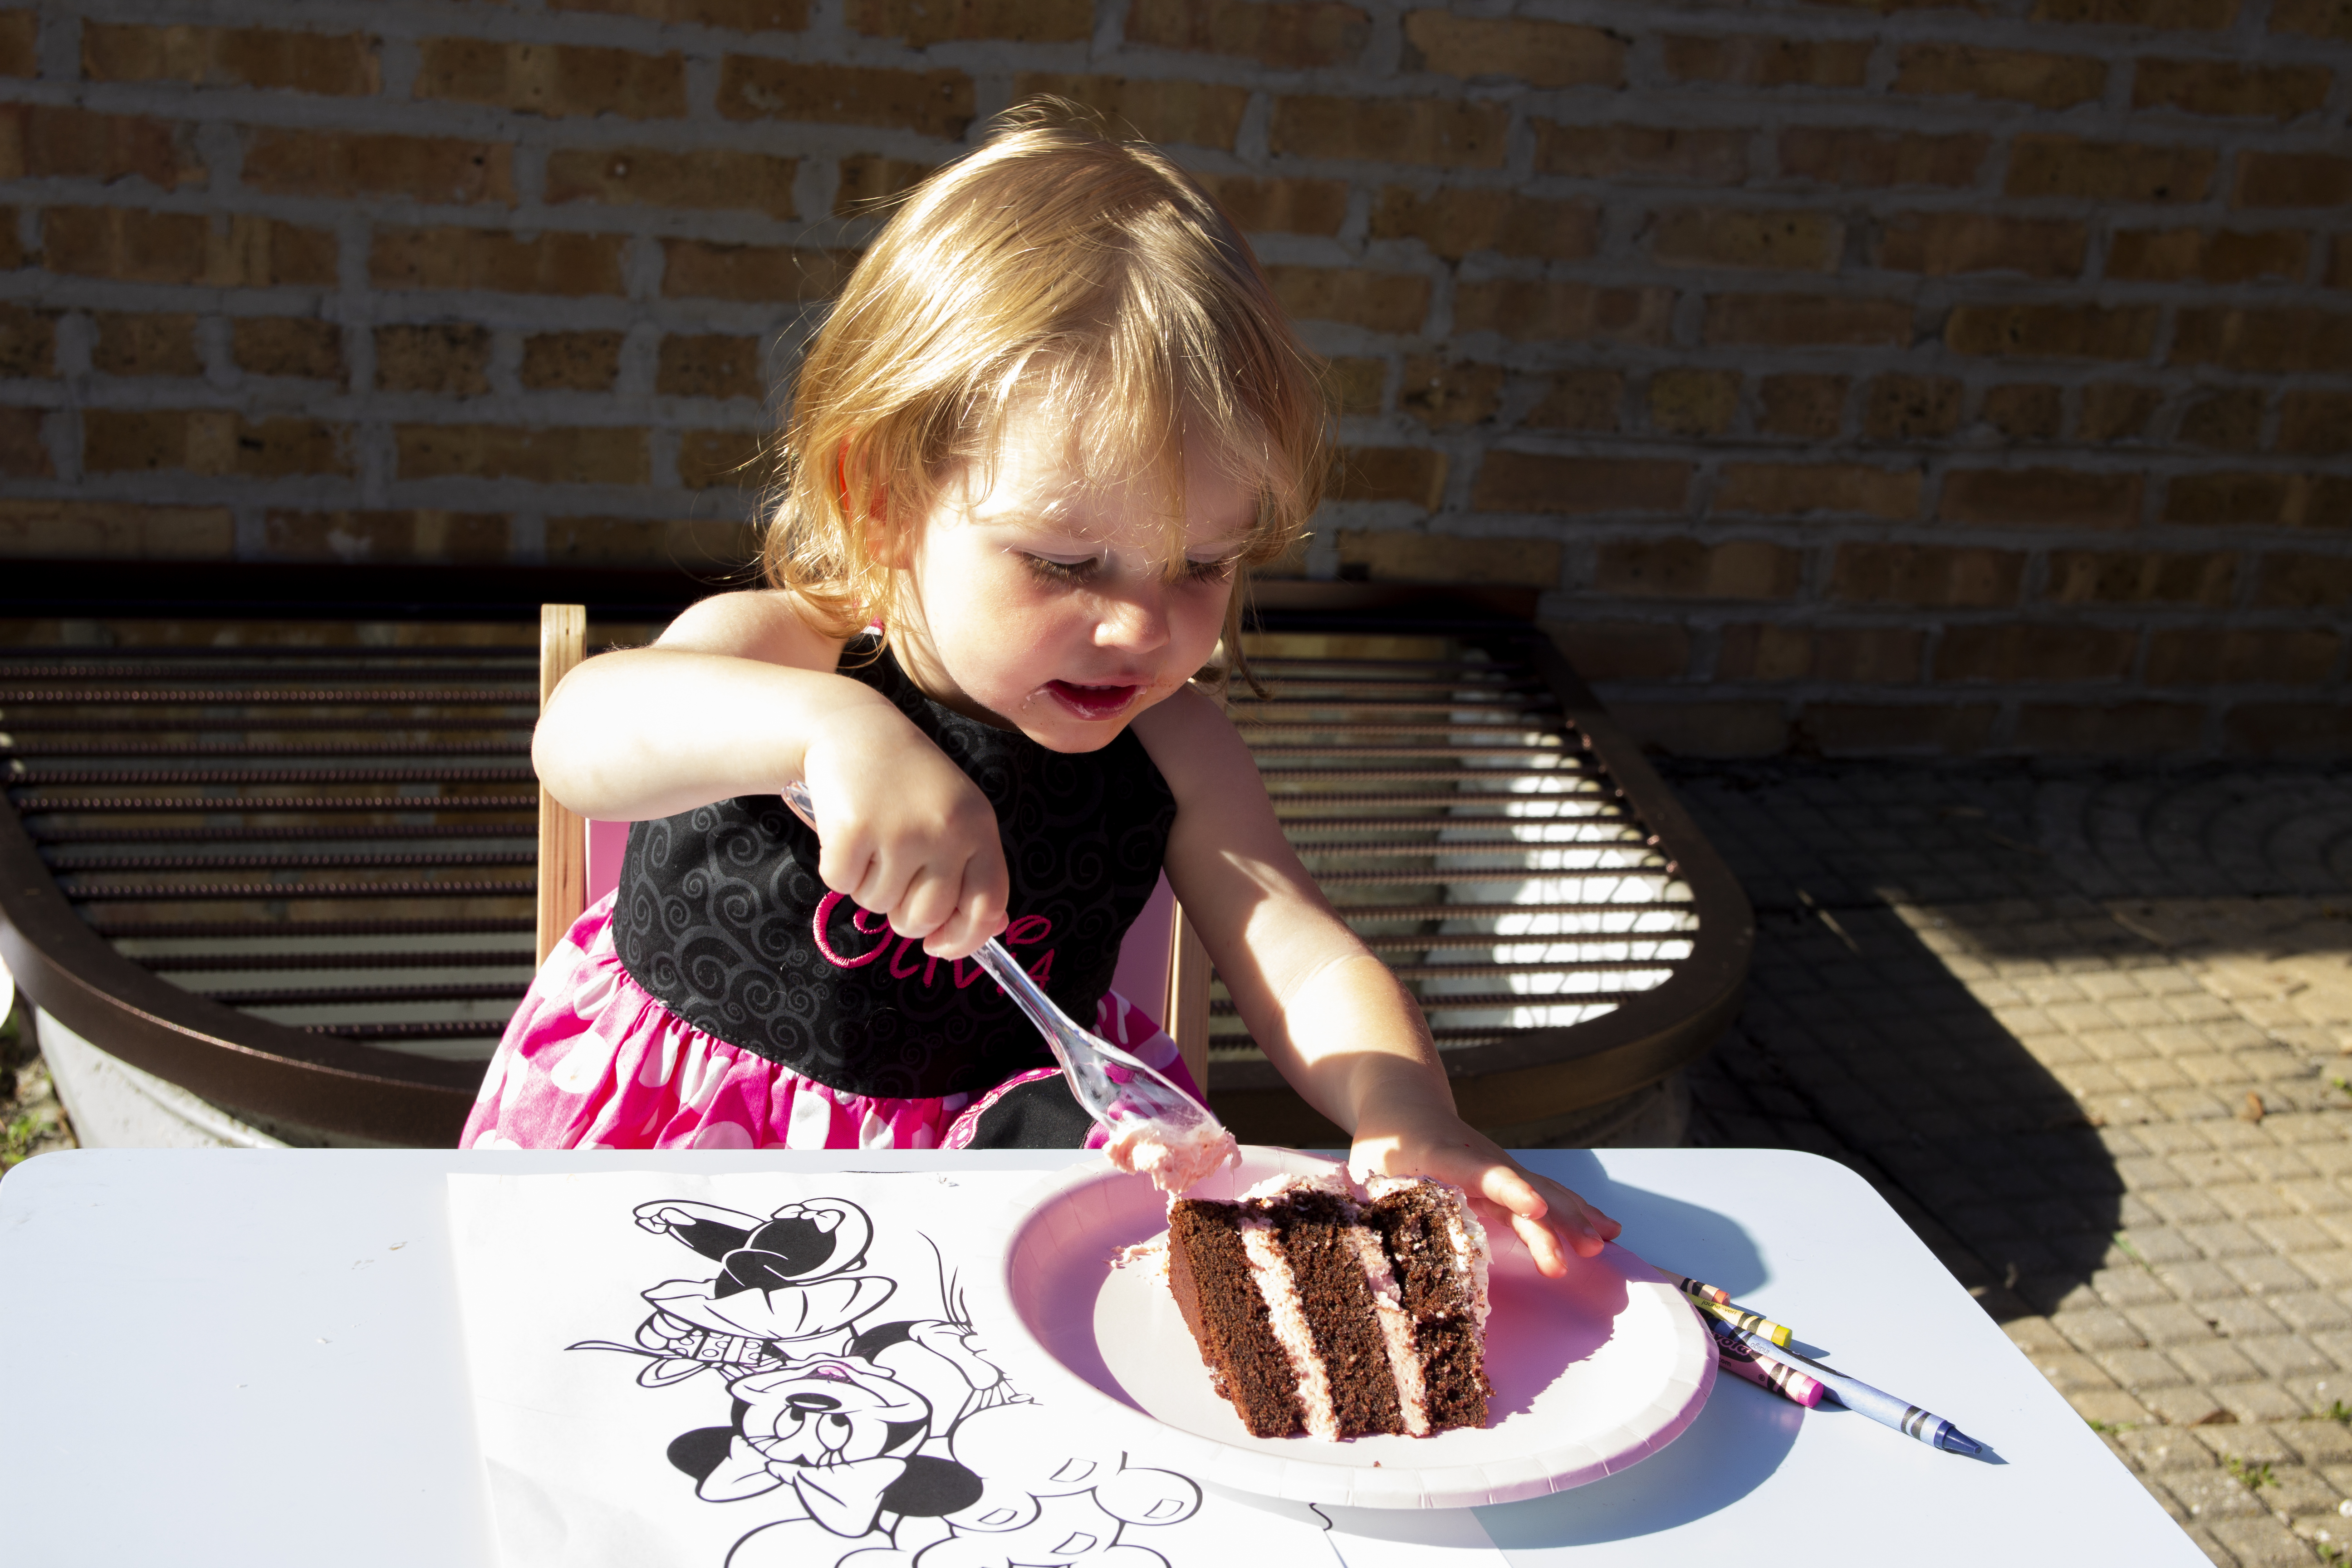 Minnie Mouse Birthday Party Ideas for a 2 Year Old